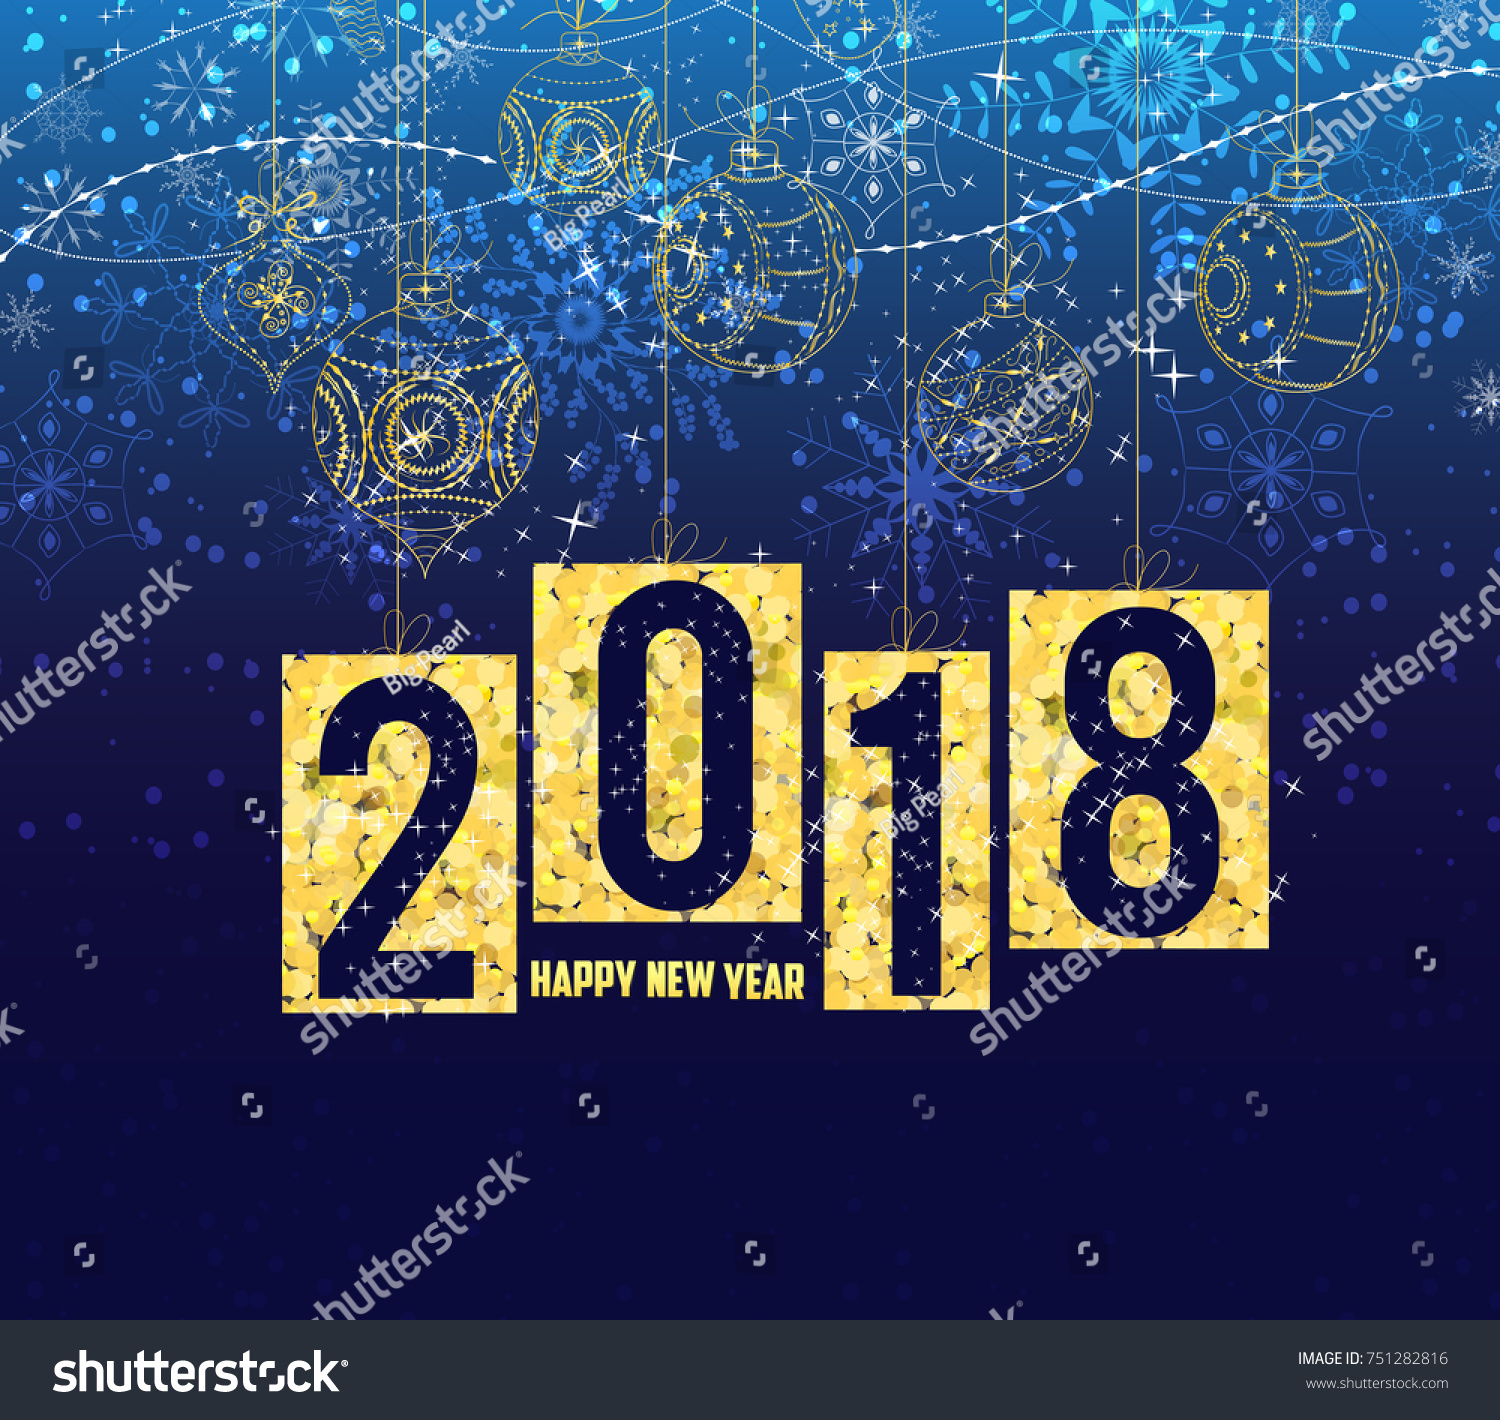 happy new year 2018 gold theme winter christmas background with balls